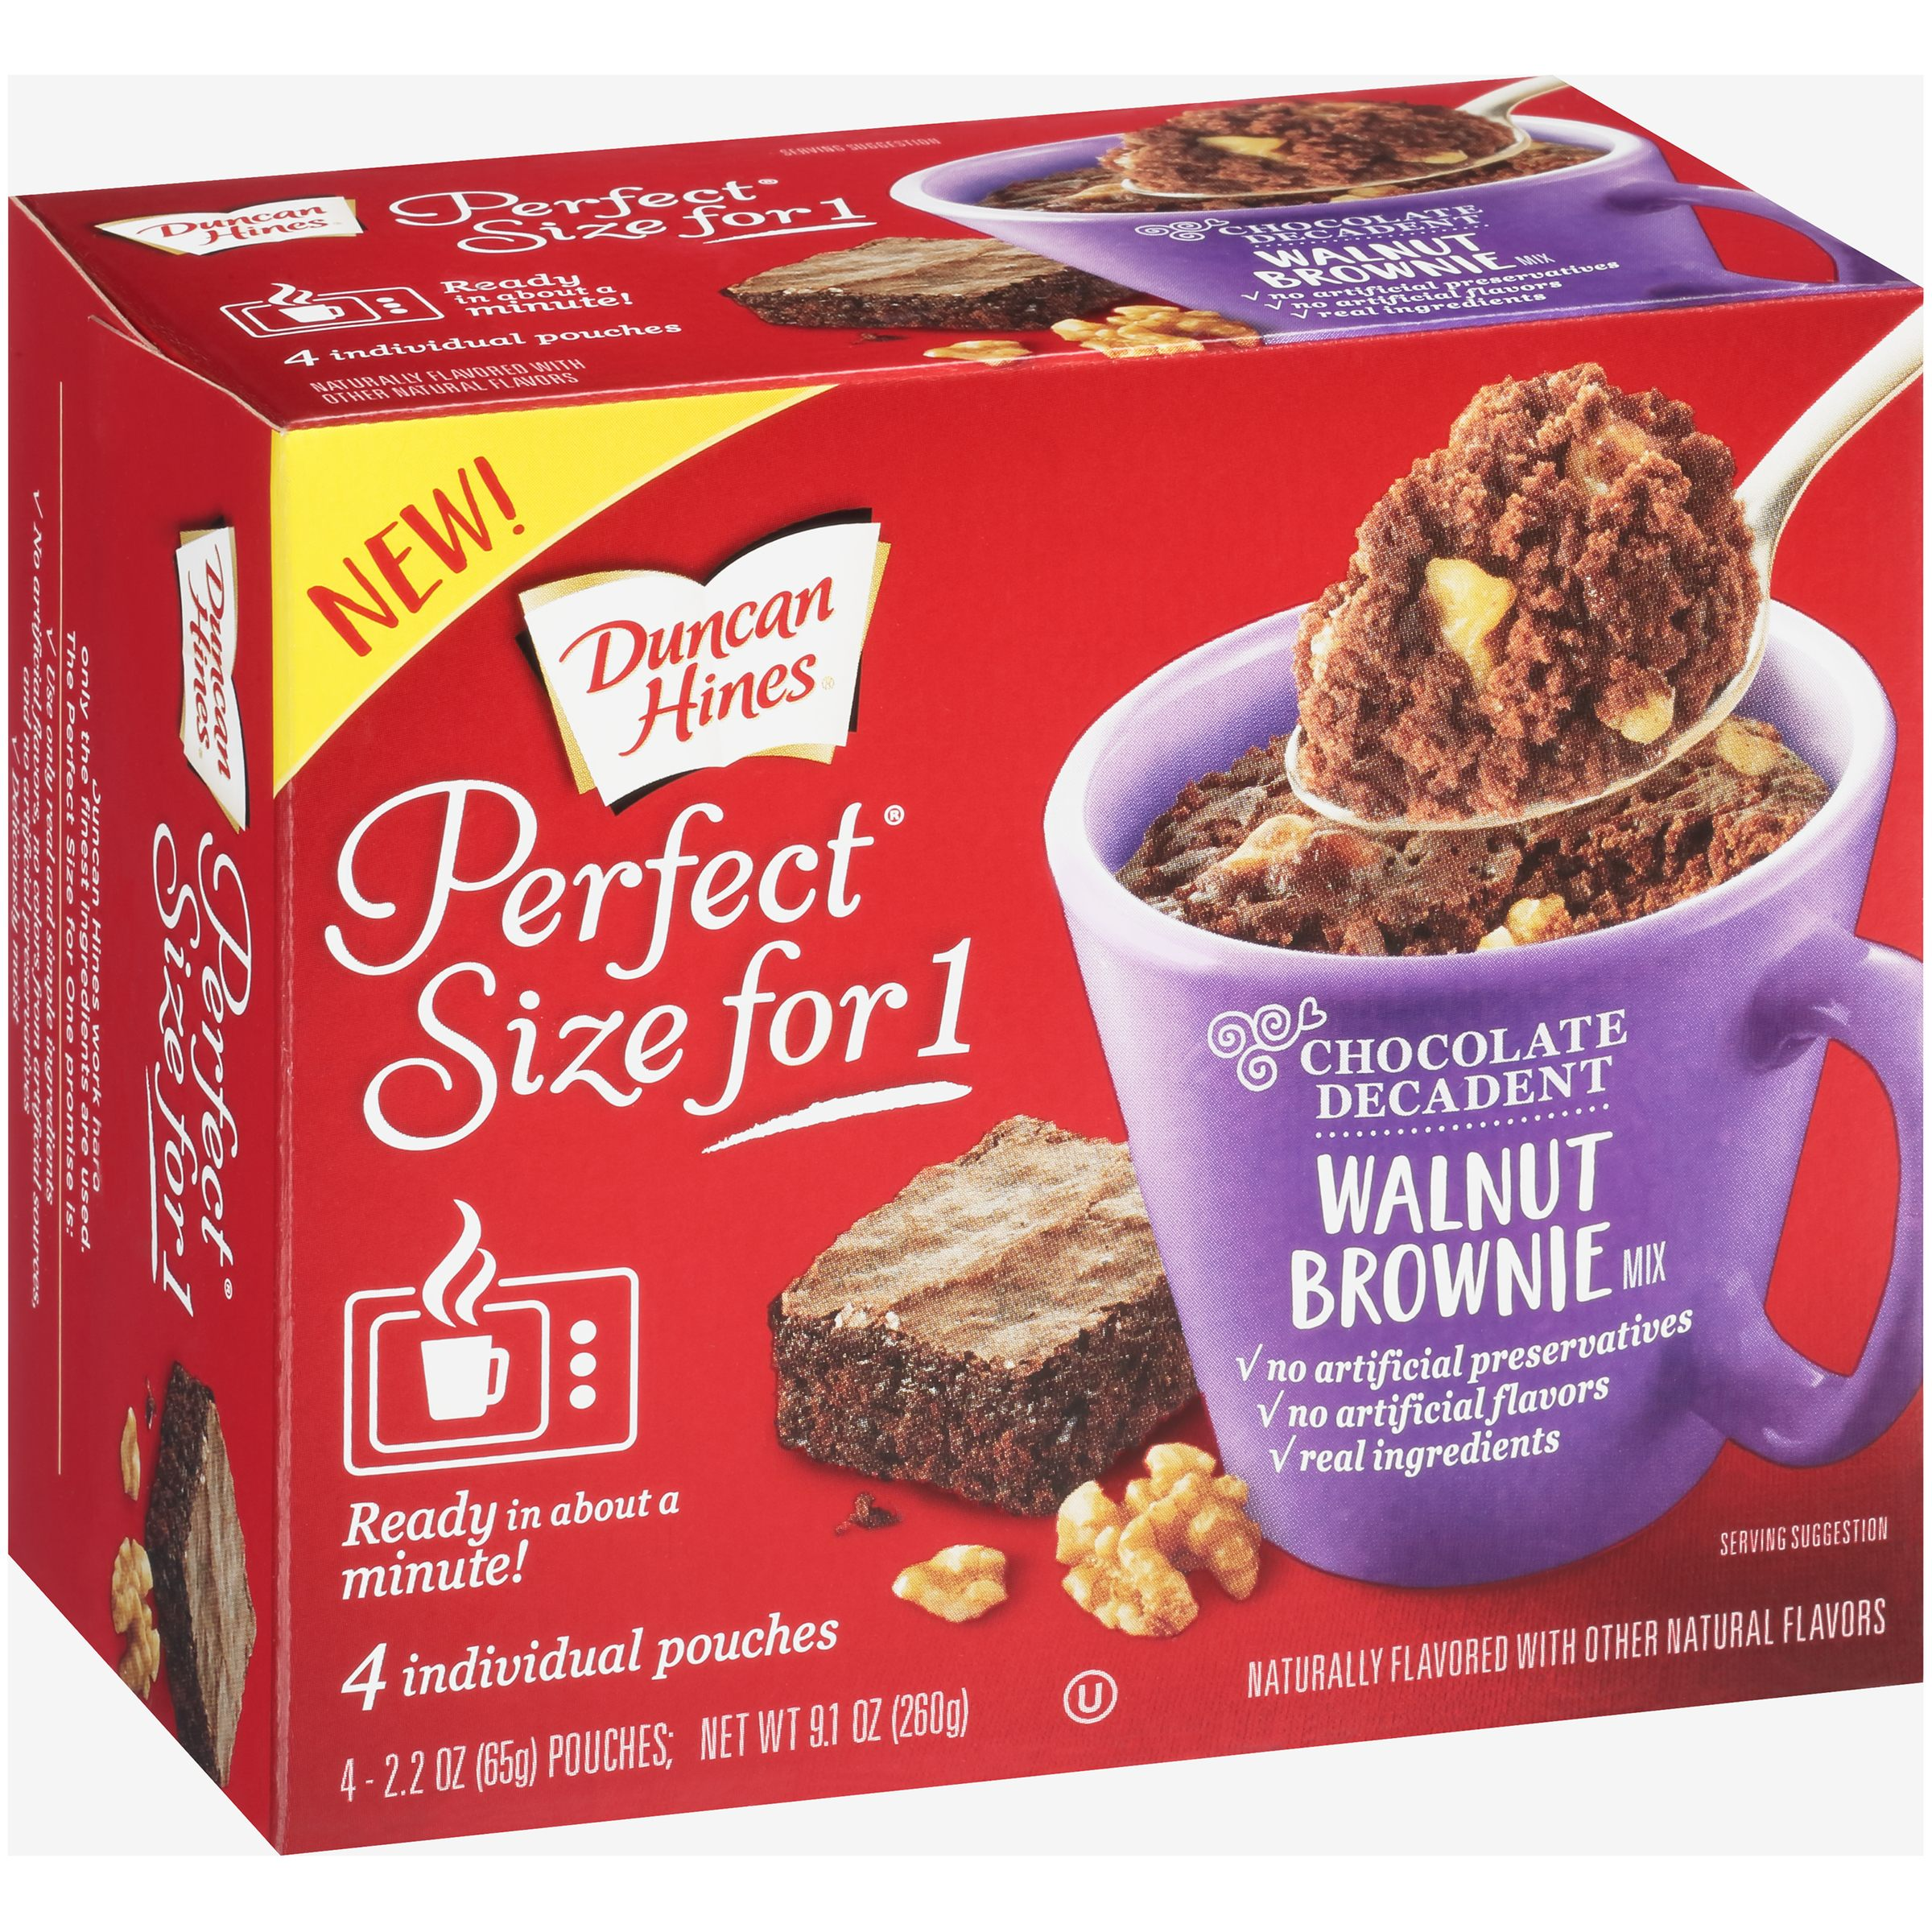 Duncan Hines® Perfect Size for 1® Chocolate Decadent Walnut Brownie Mix 4-2.2 oz. Pouches